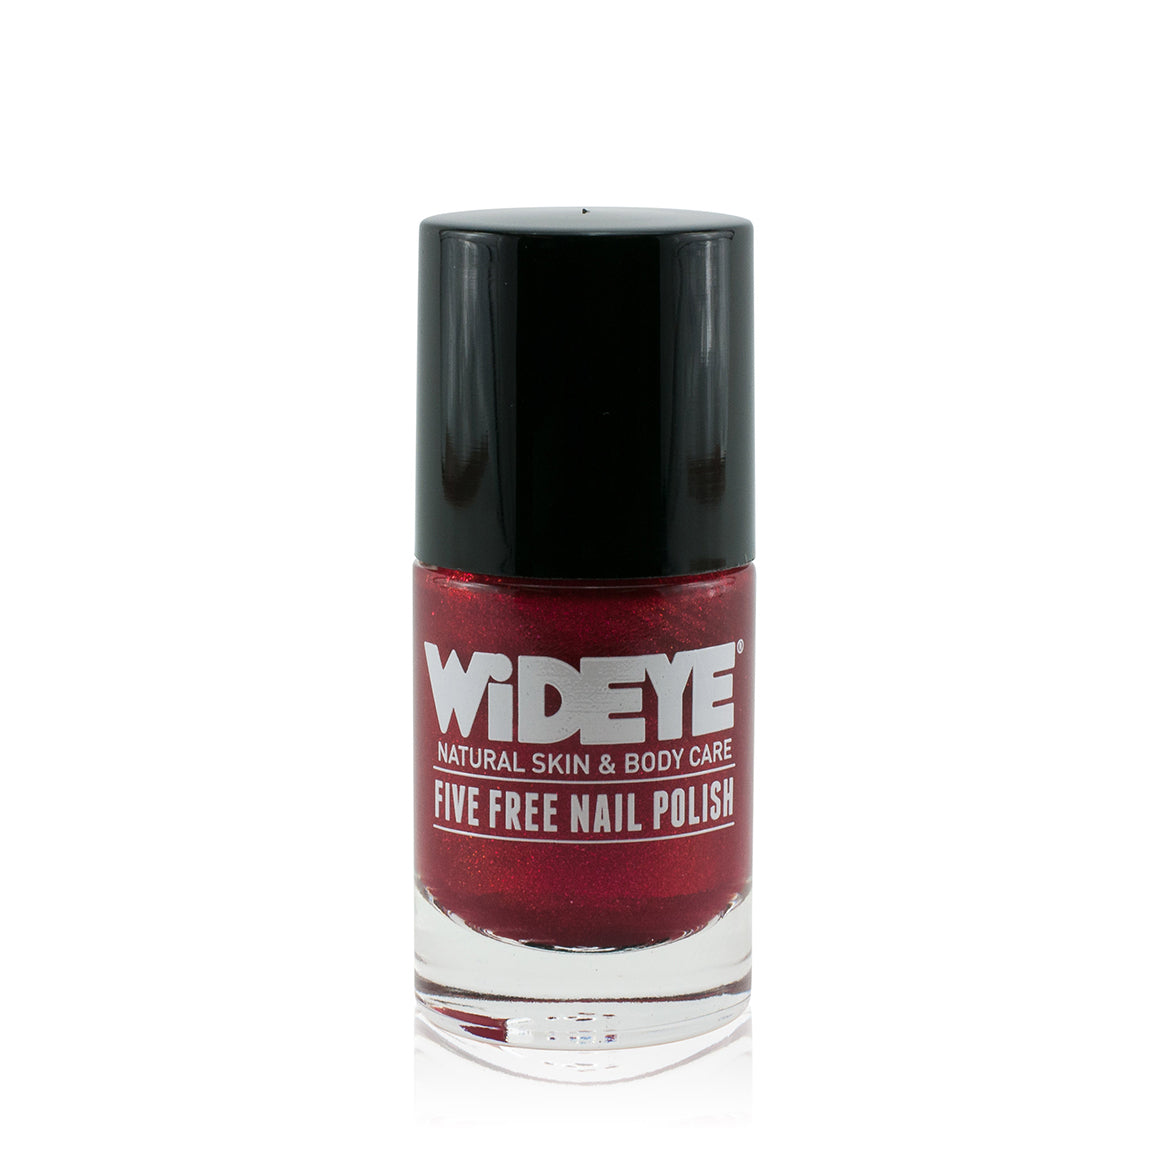 Intense red shimmer nail varnish in glass bottle by WiDEYE.